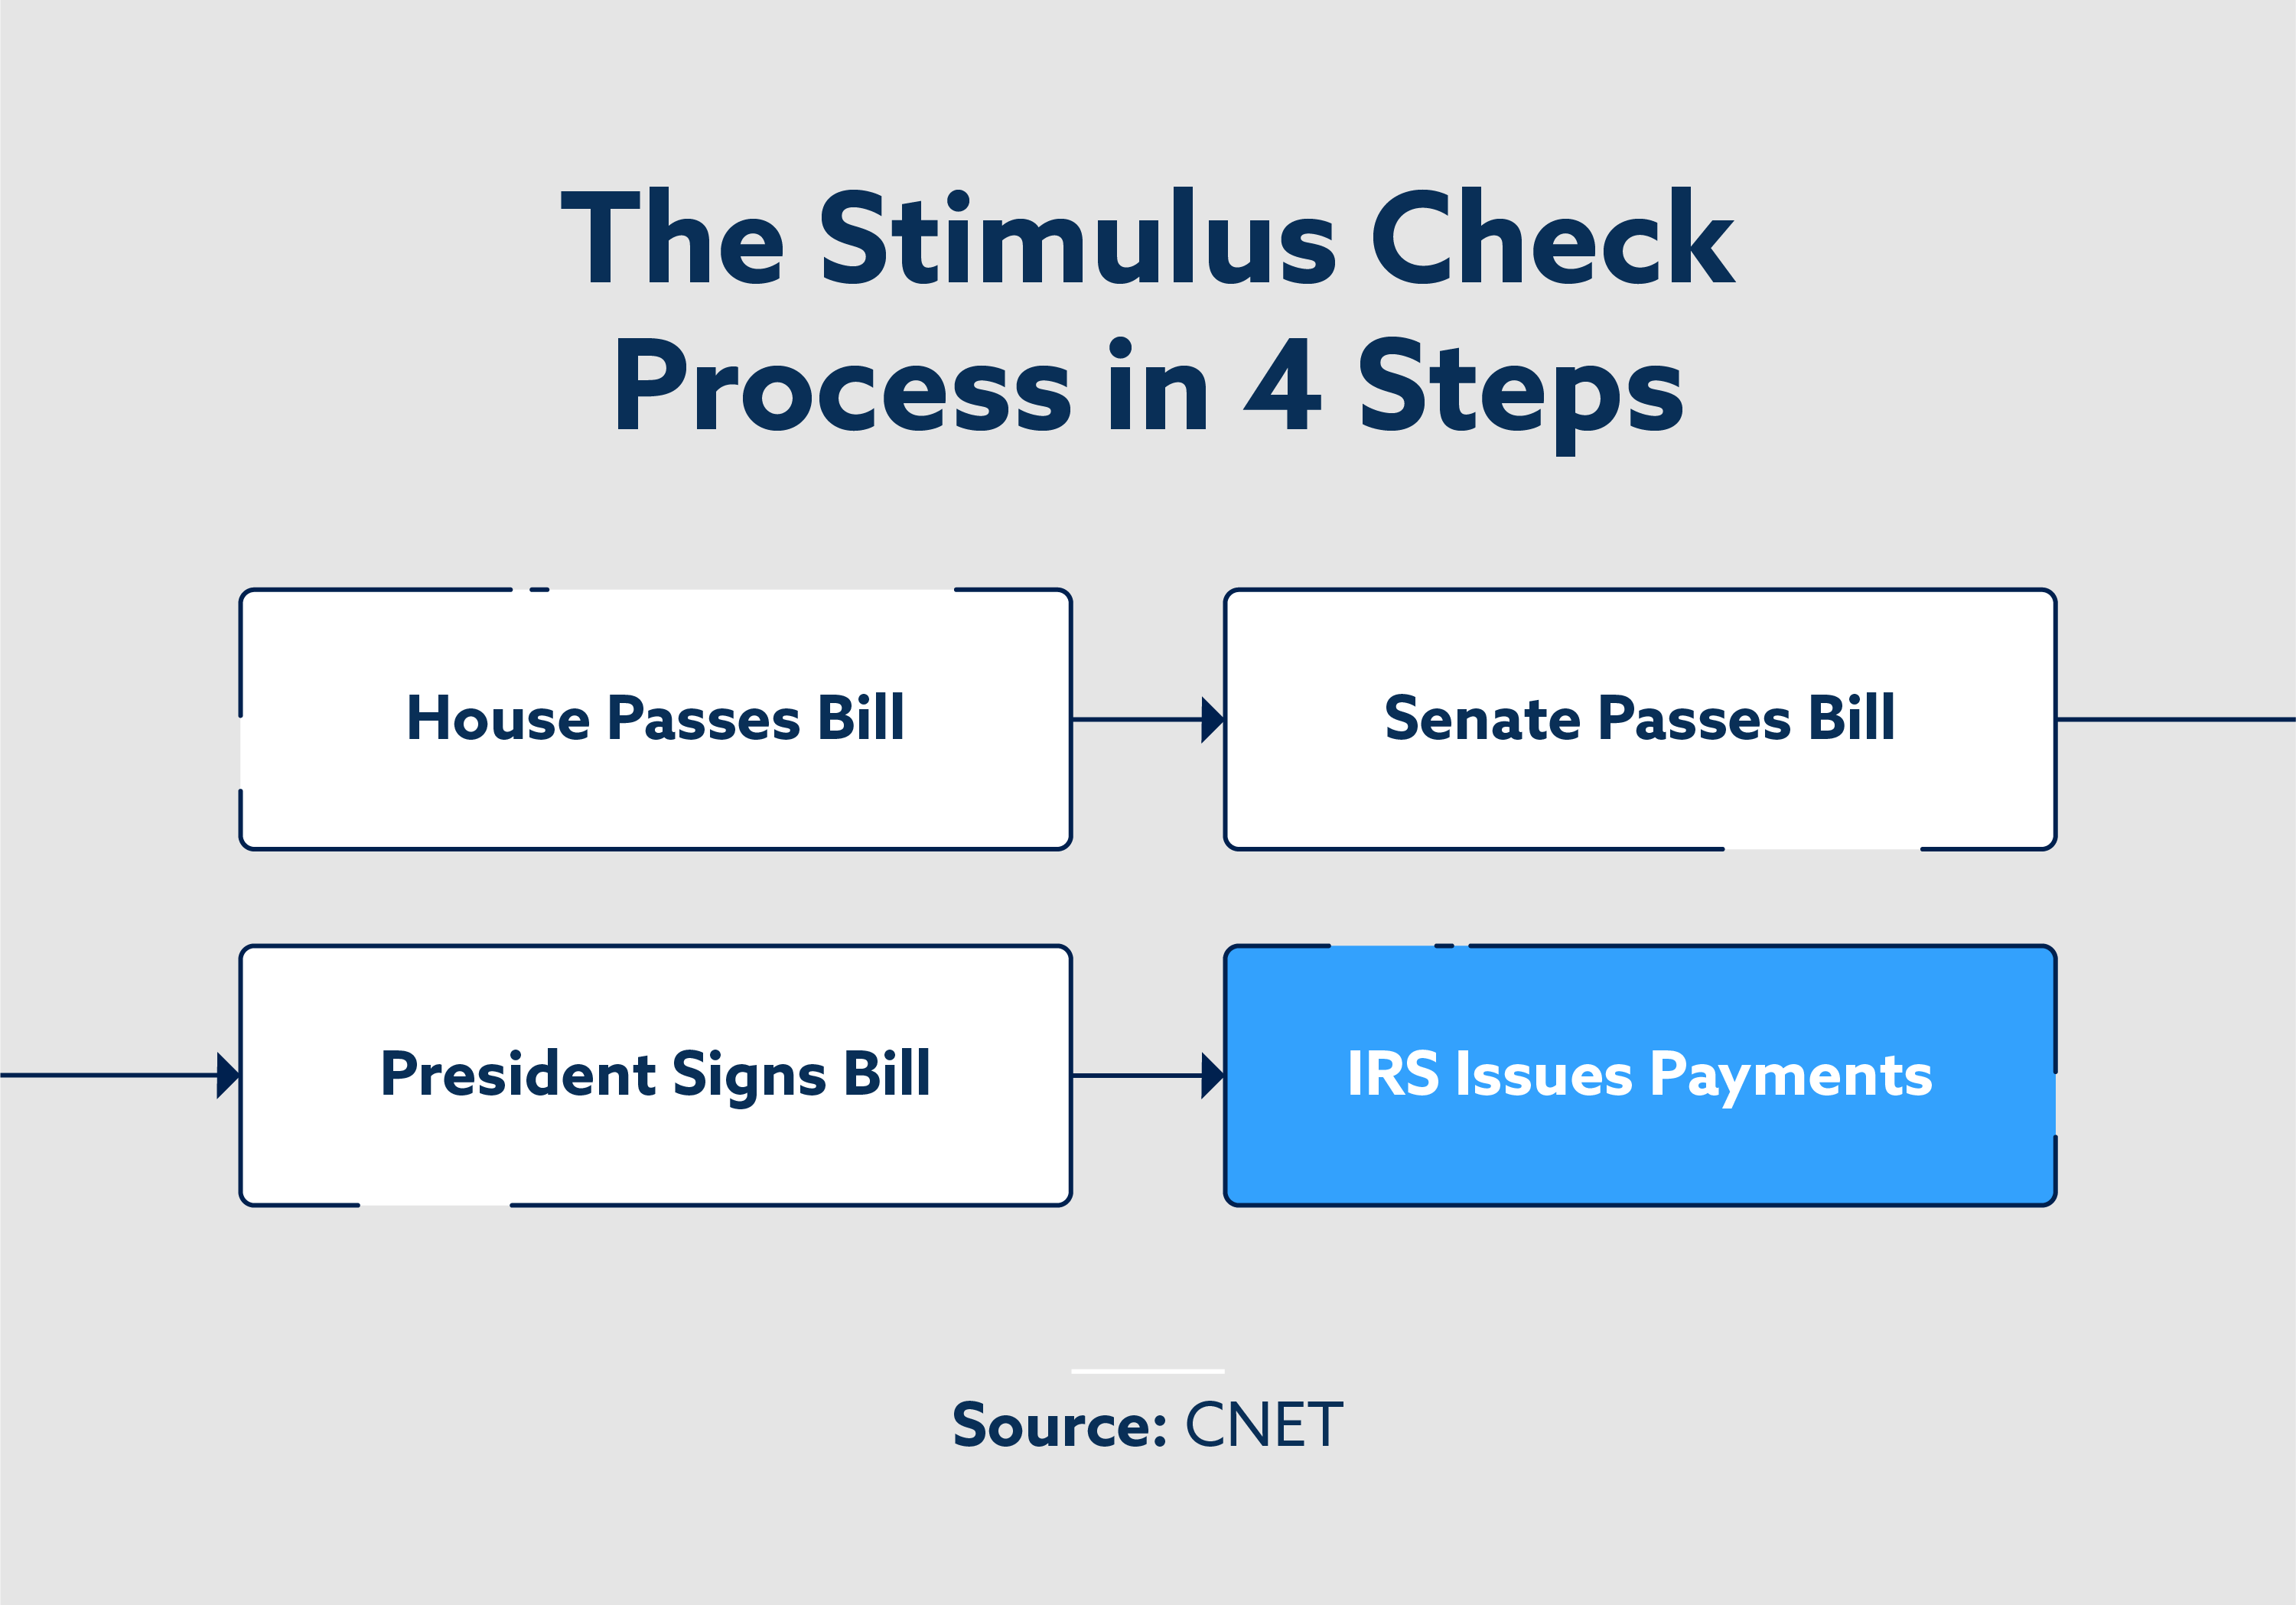 The Stimulus check process in 4 steps